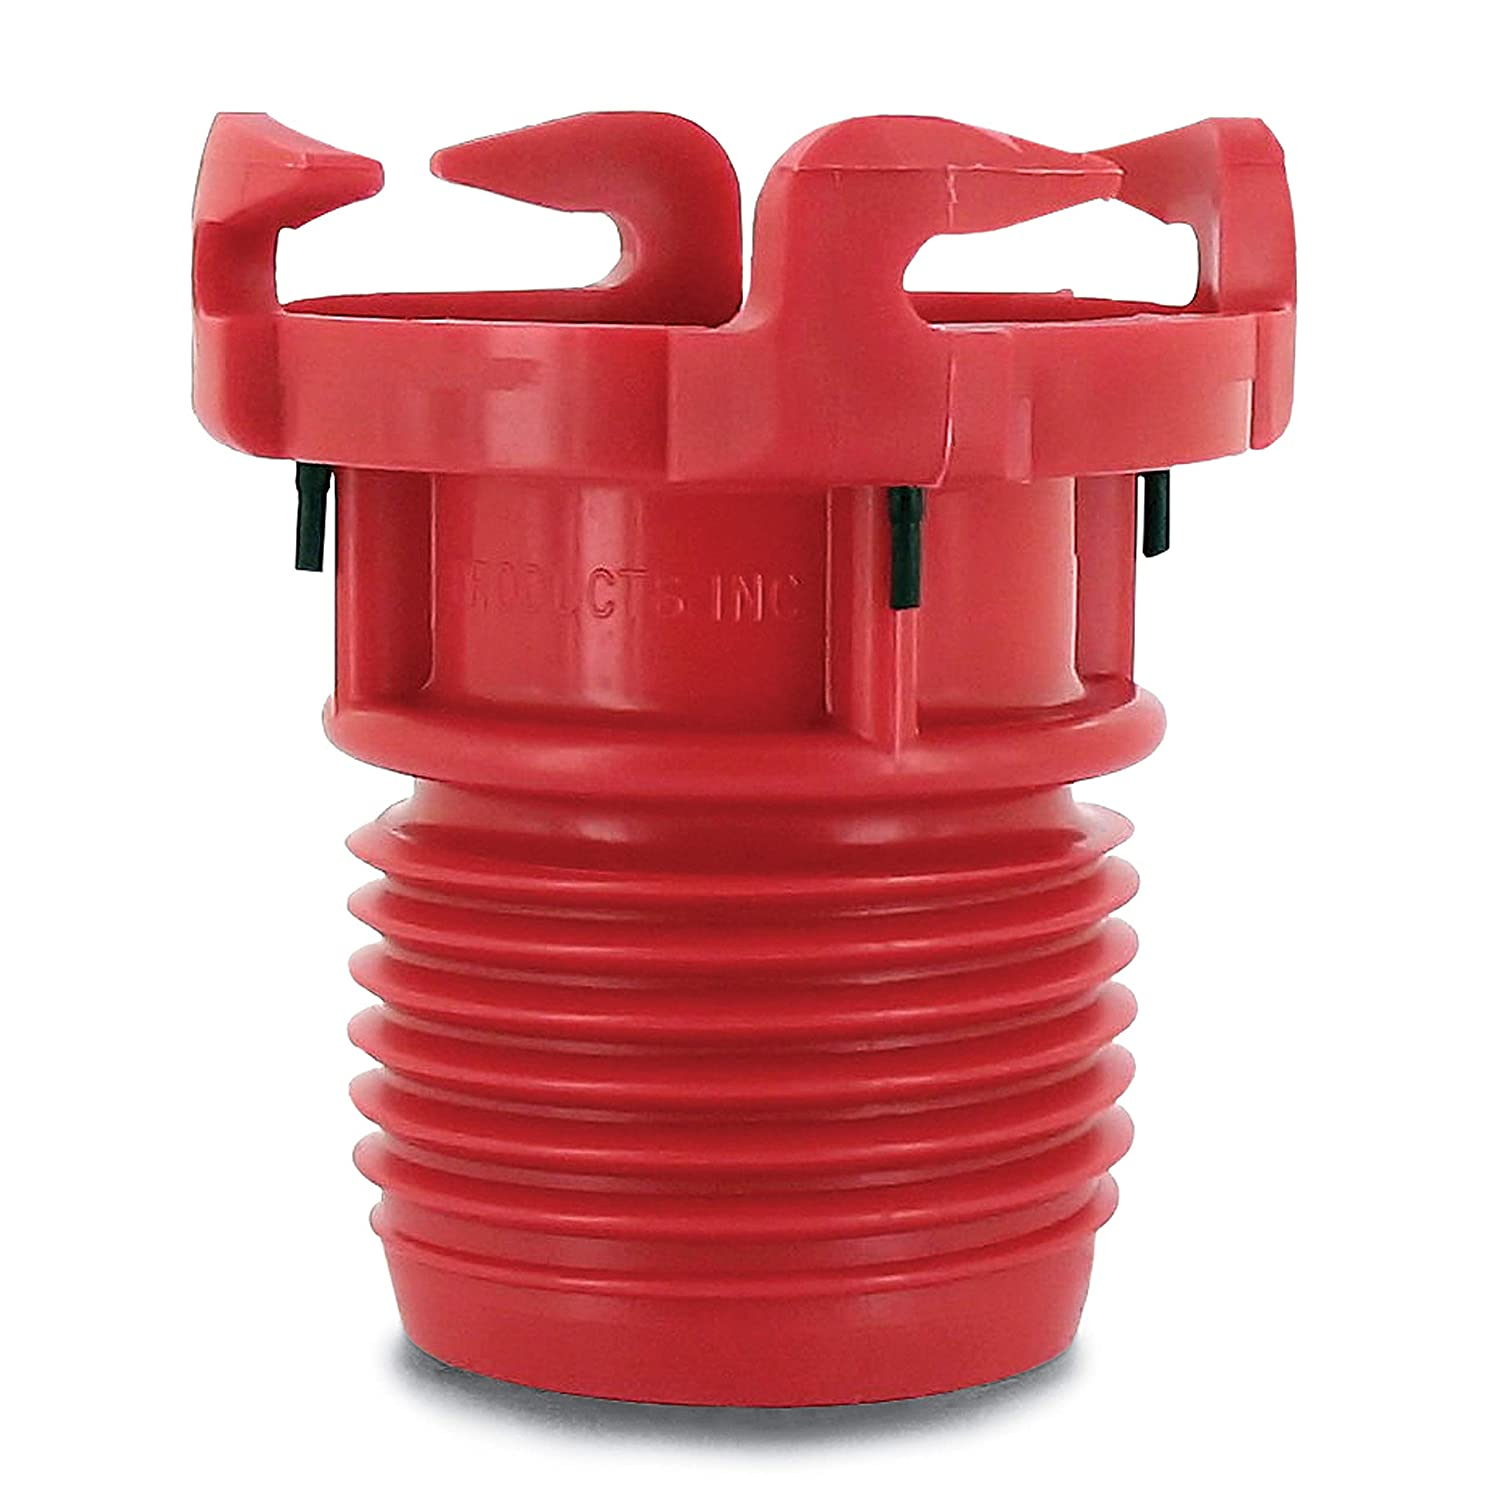 Valterra F02-3101 Red Bulk EZ Coupler Valve Adapter 25510810